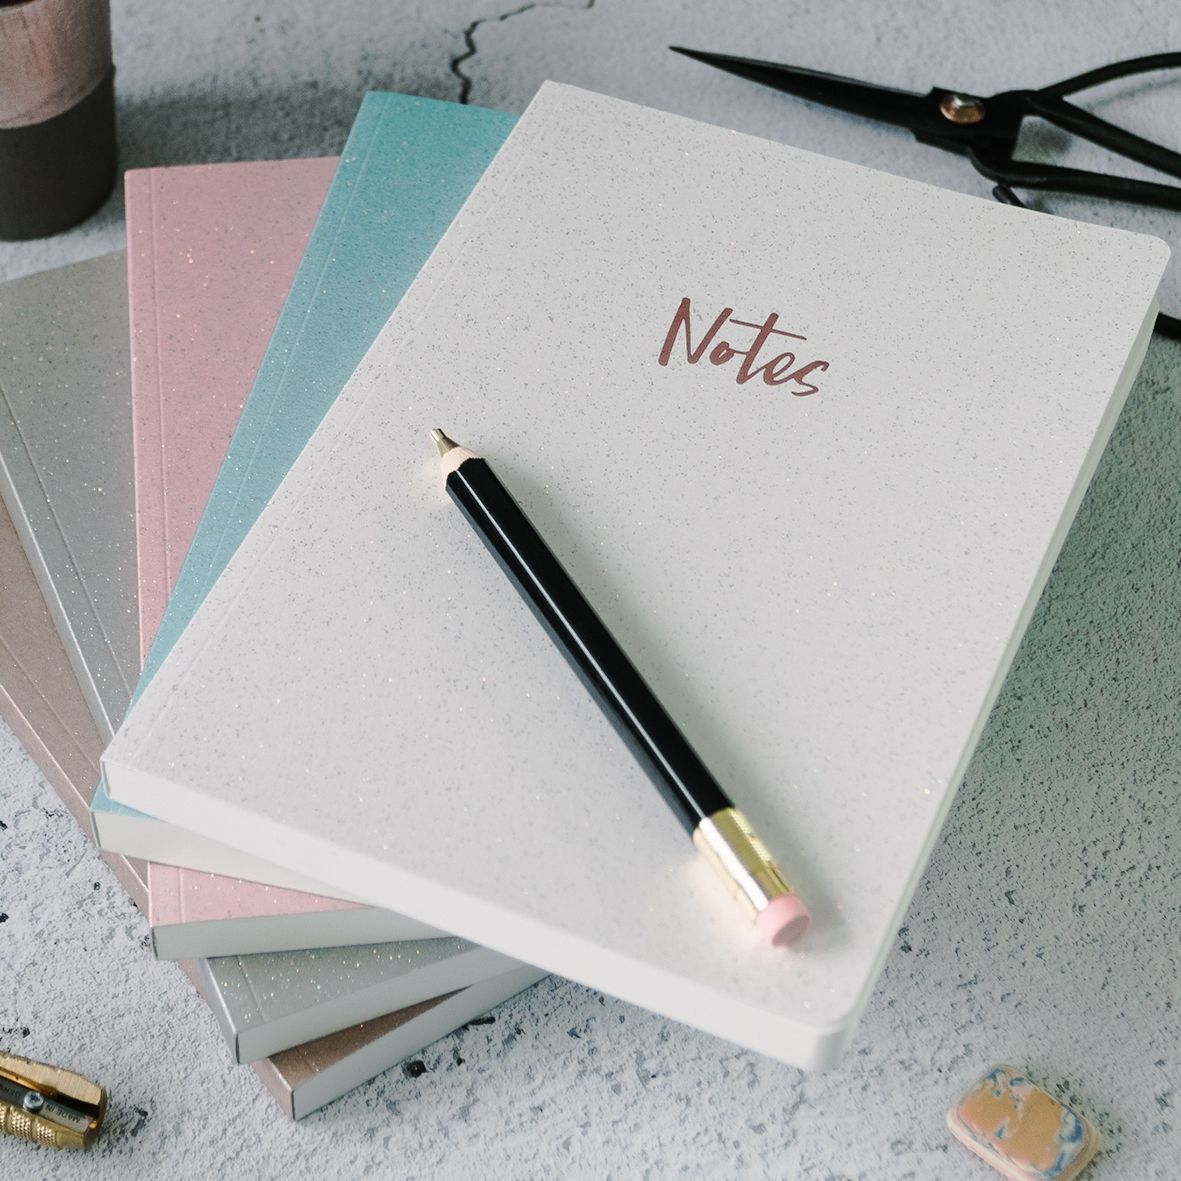 Limelight Note Books and Pencils - NEW category image